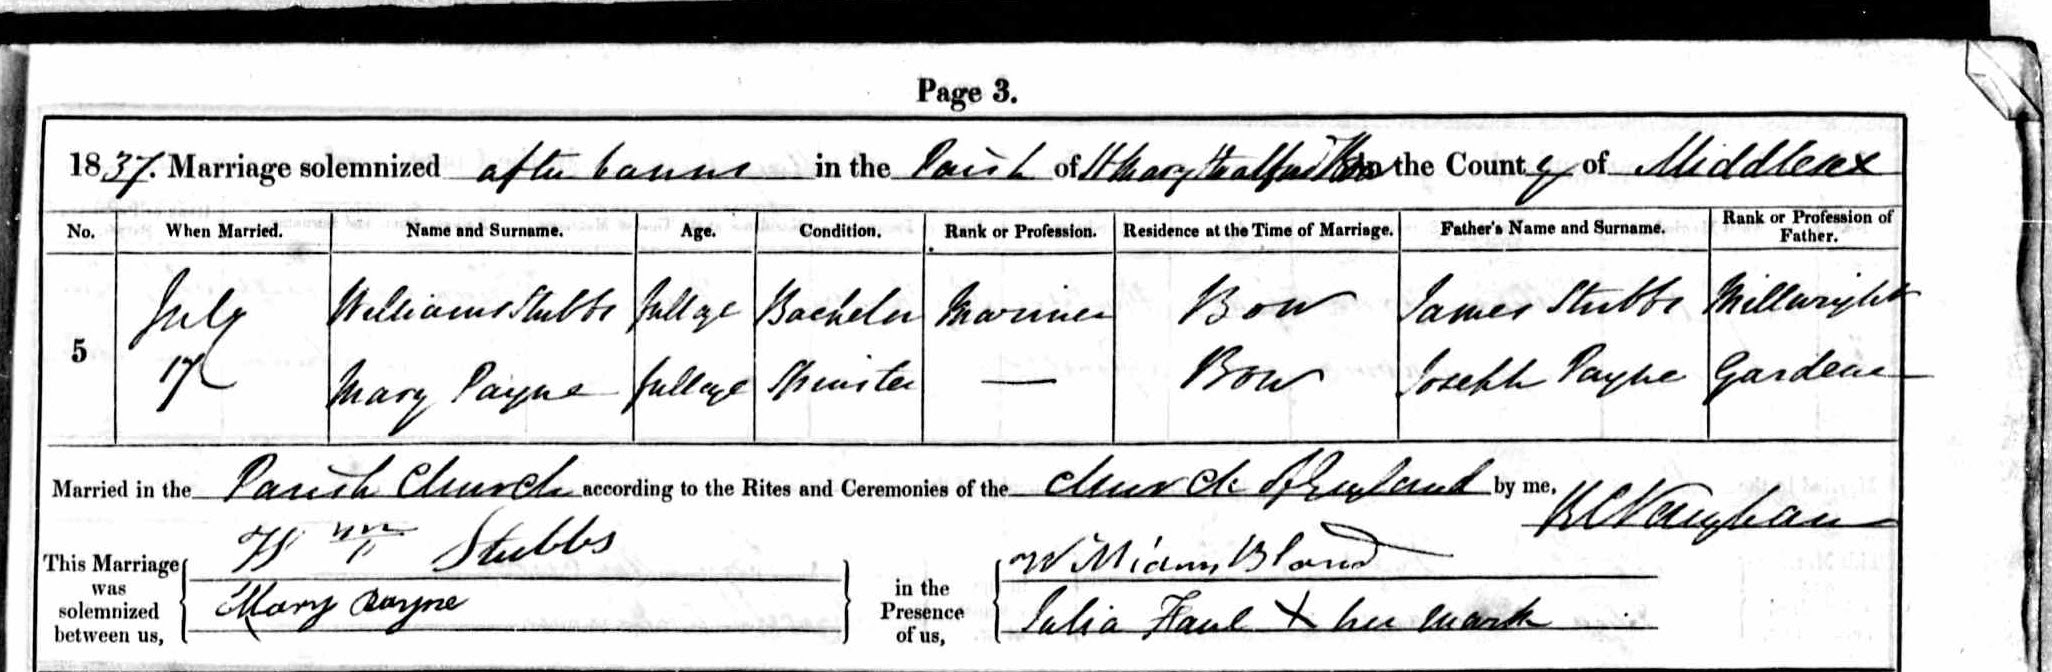 Marriage record, William Stubbs and Mary Payne, 1837